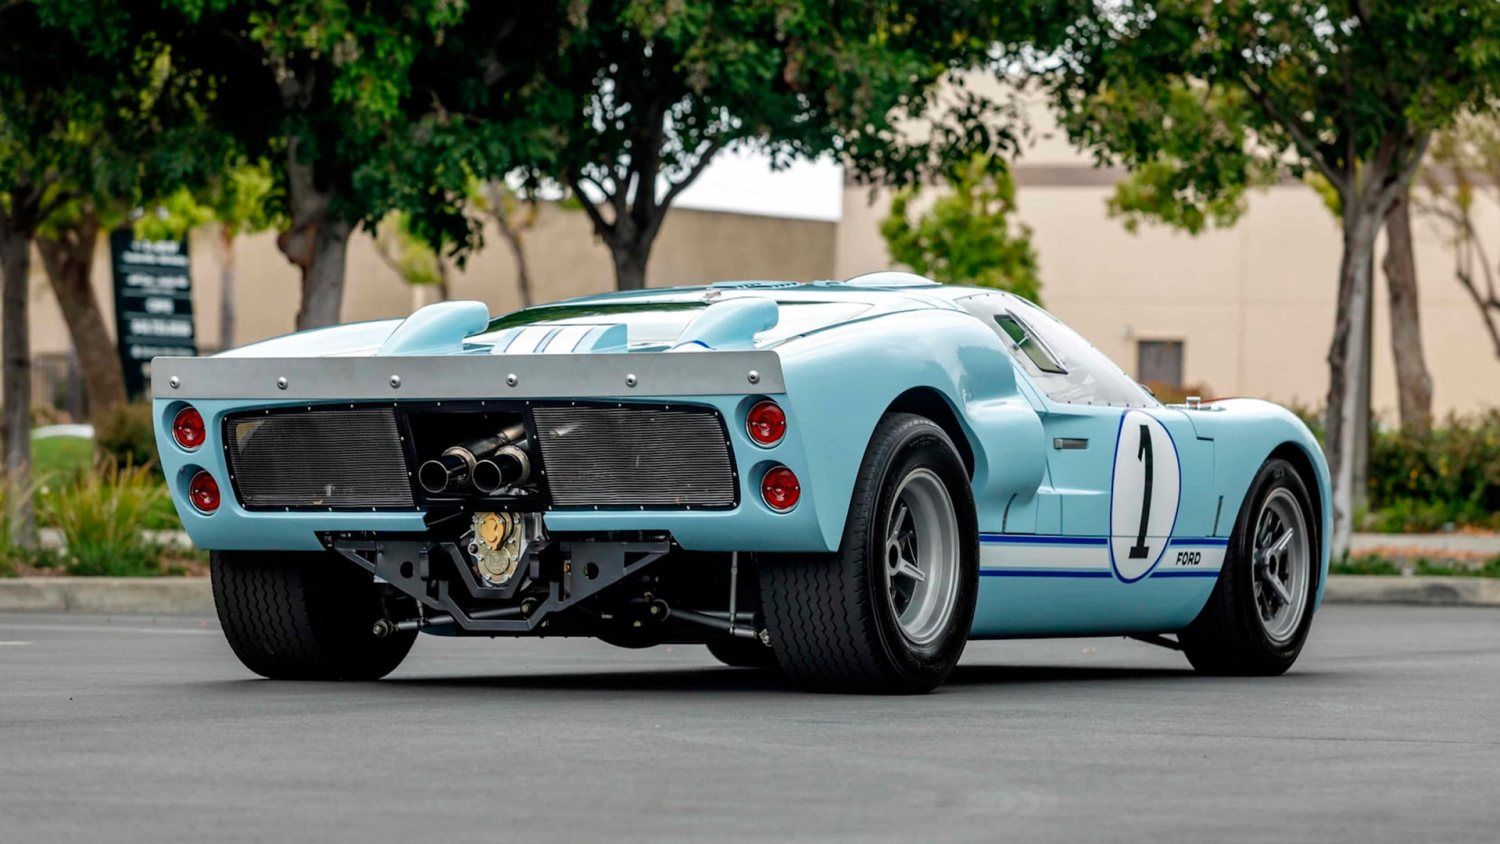 Ford Gt40 Replica For Sale >> Buy The Replica Gt40 Hero Car Actually Used In The Ford V